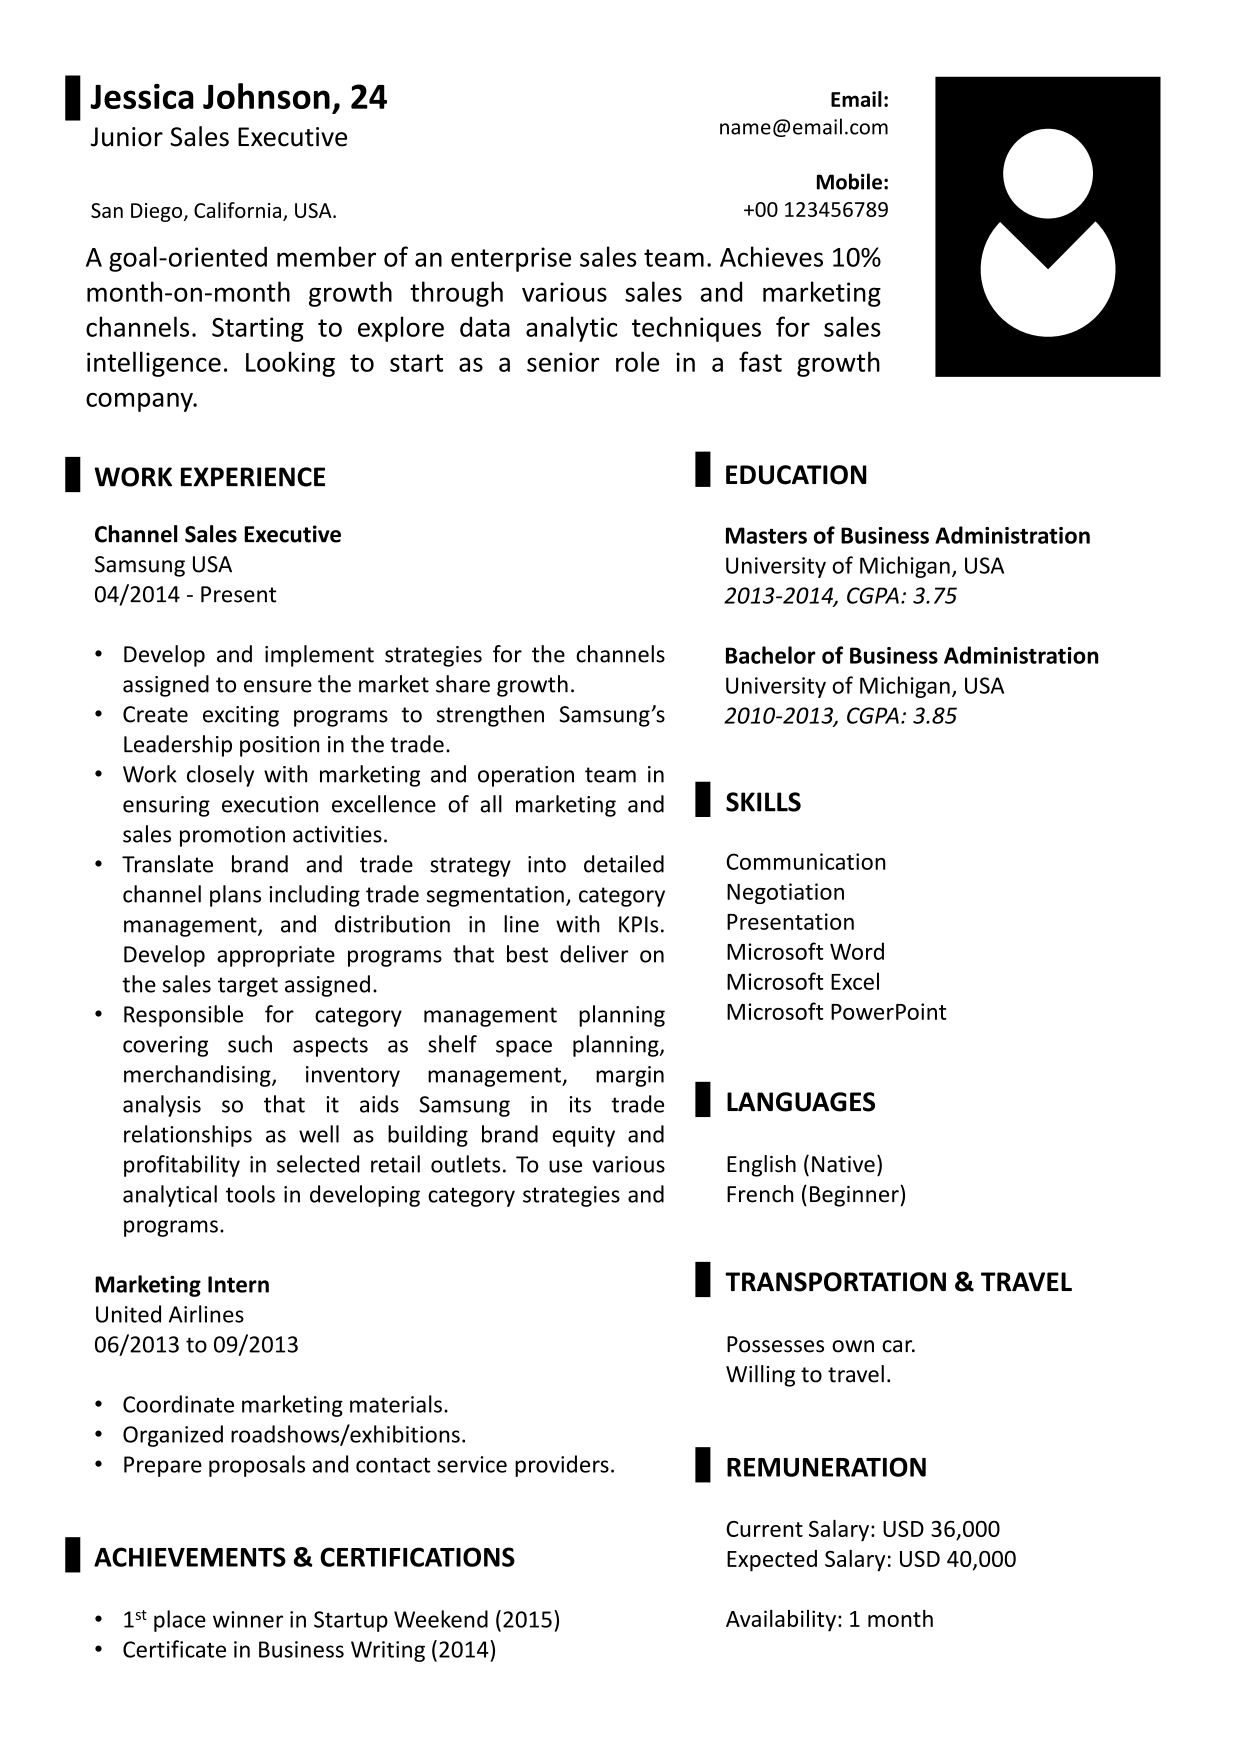 JessicaS Resume Template  Gy Resume